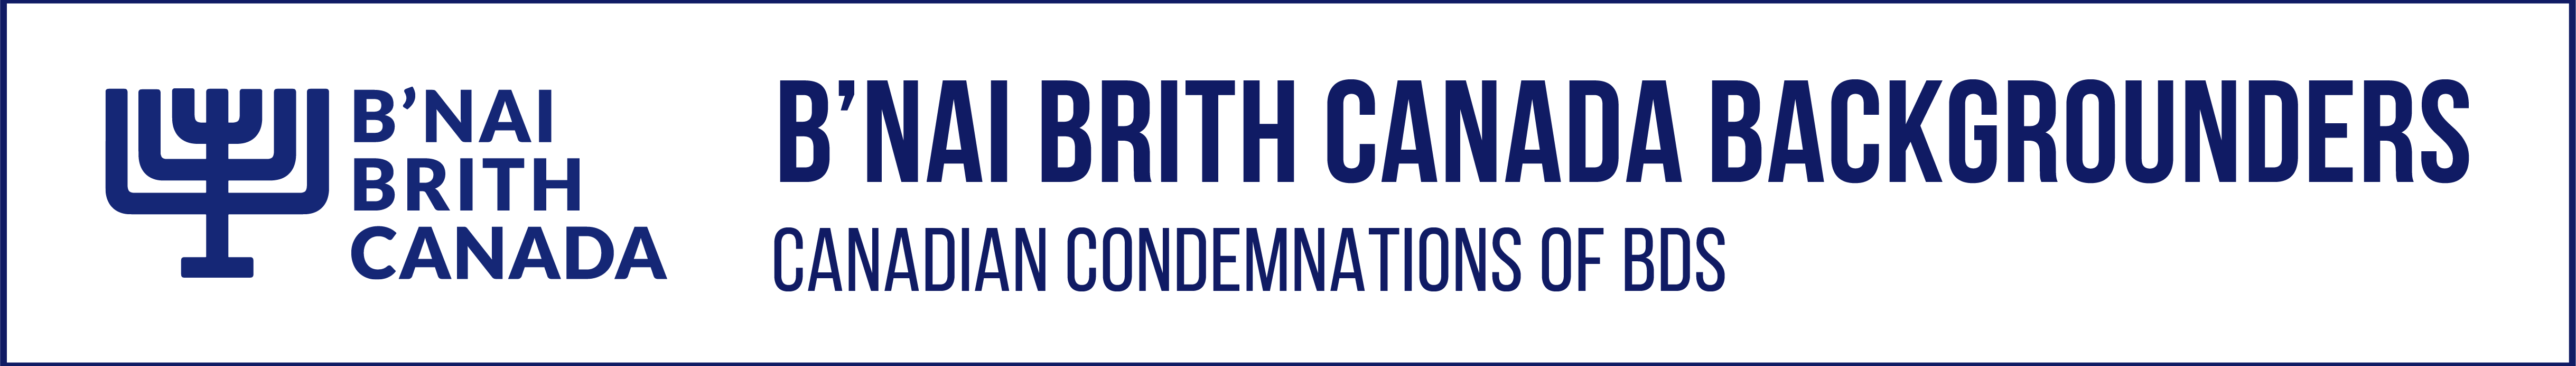 B'nai Brith Backgrounders: Canadian Condemnations of BDS